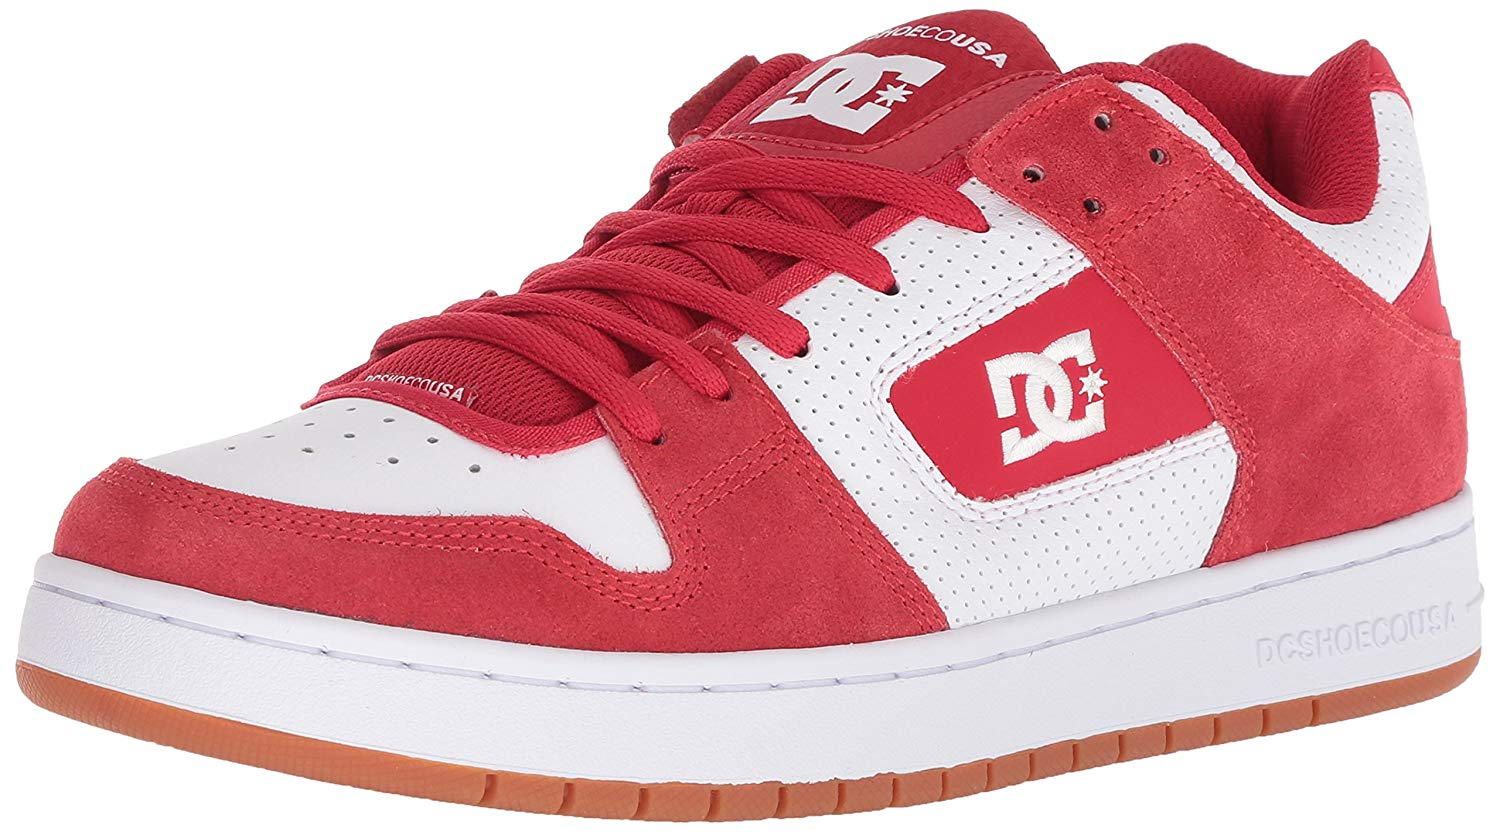 9a8ae2c771b DC Men s Manteca Skate Shoe